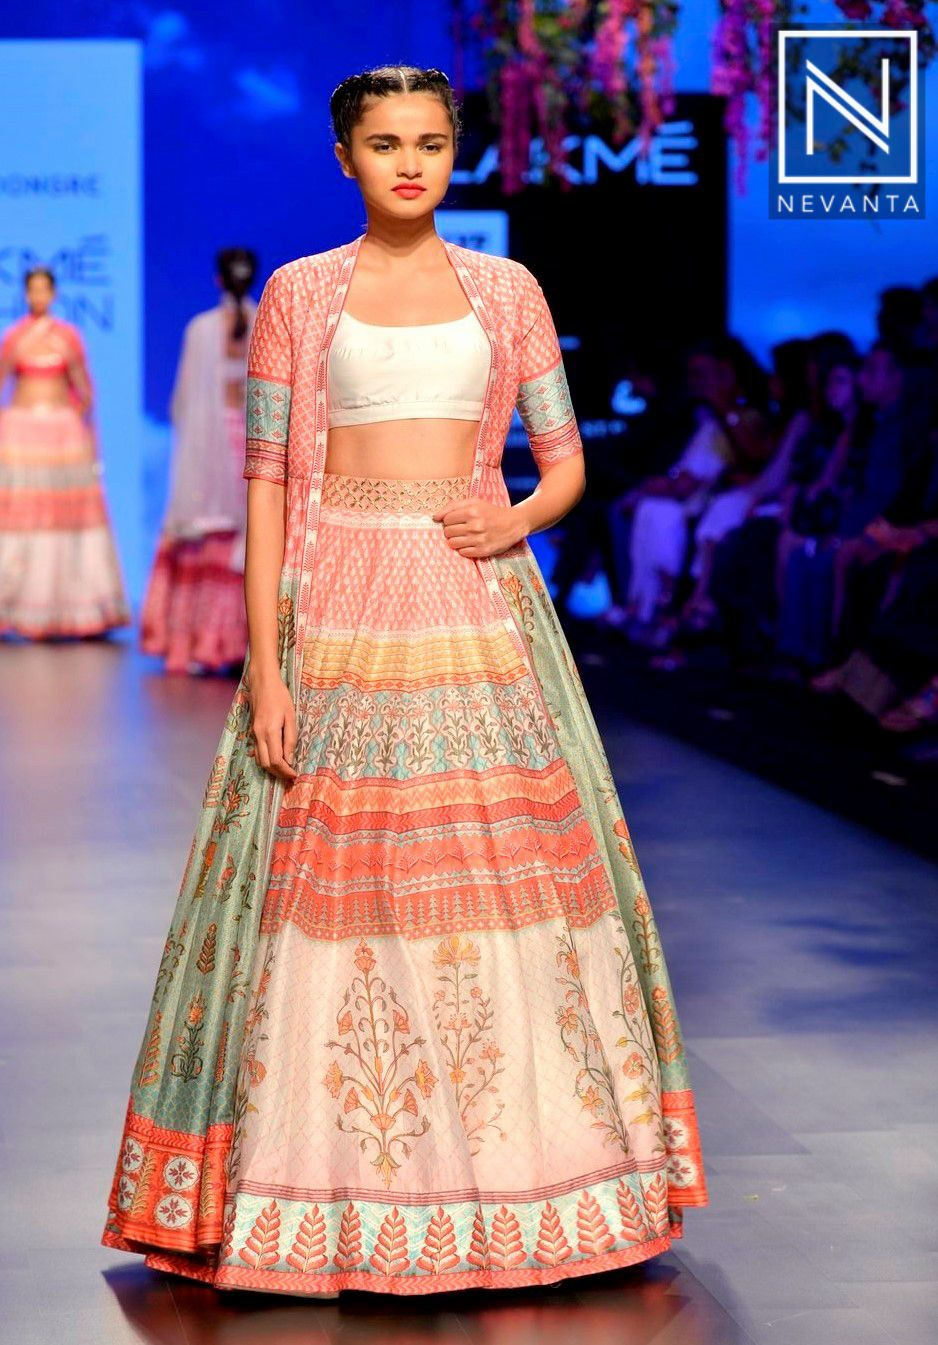 A Printed Crop Top Lehenga With A Matching Long Jacket By Anitadongre Traditional Fashion Clothes For Women Cropped Jacket Outfit